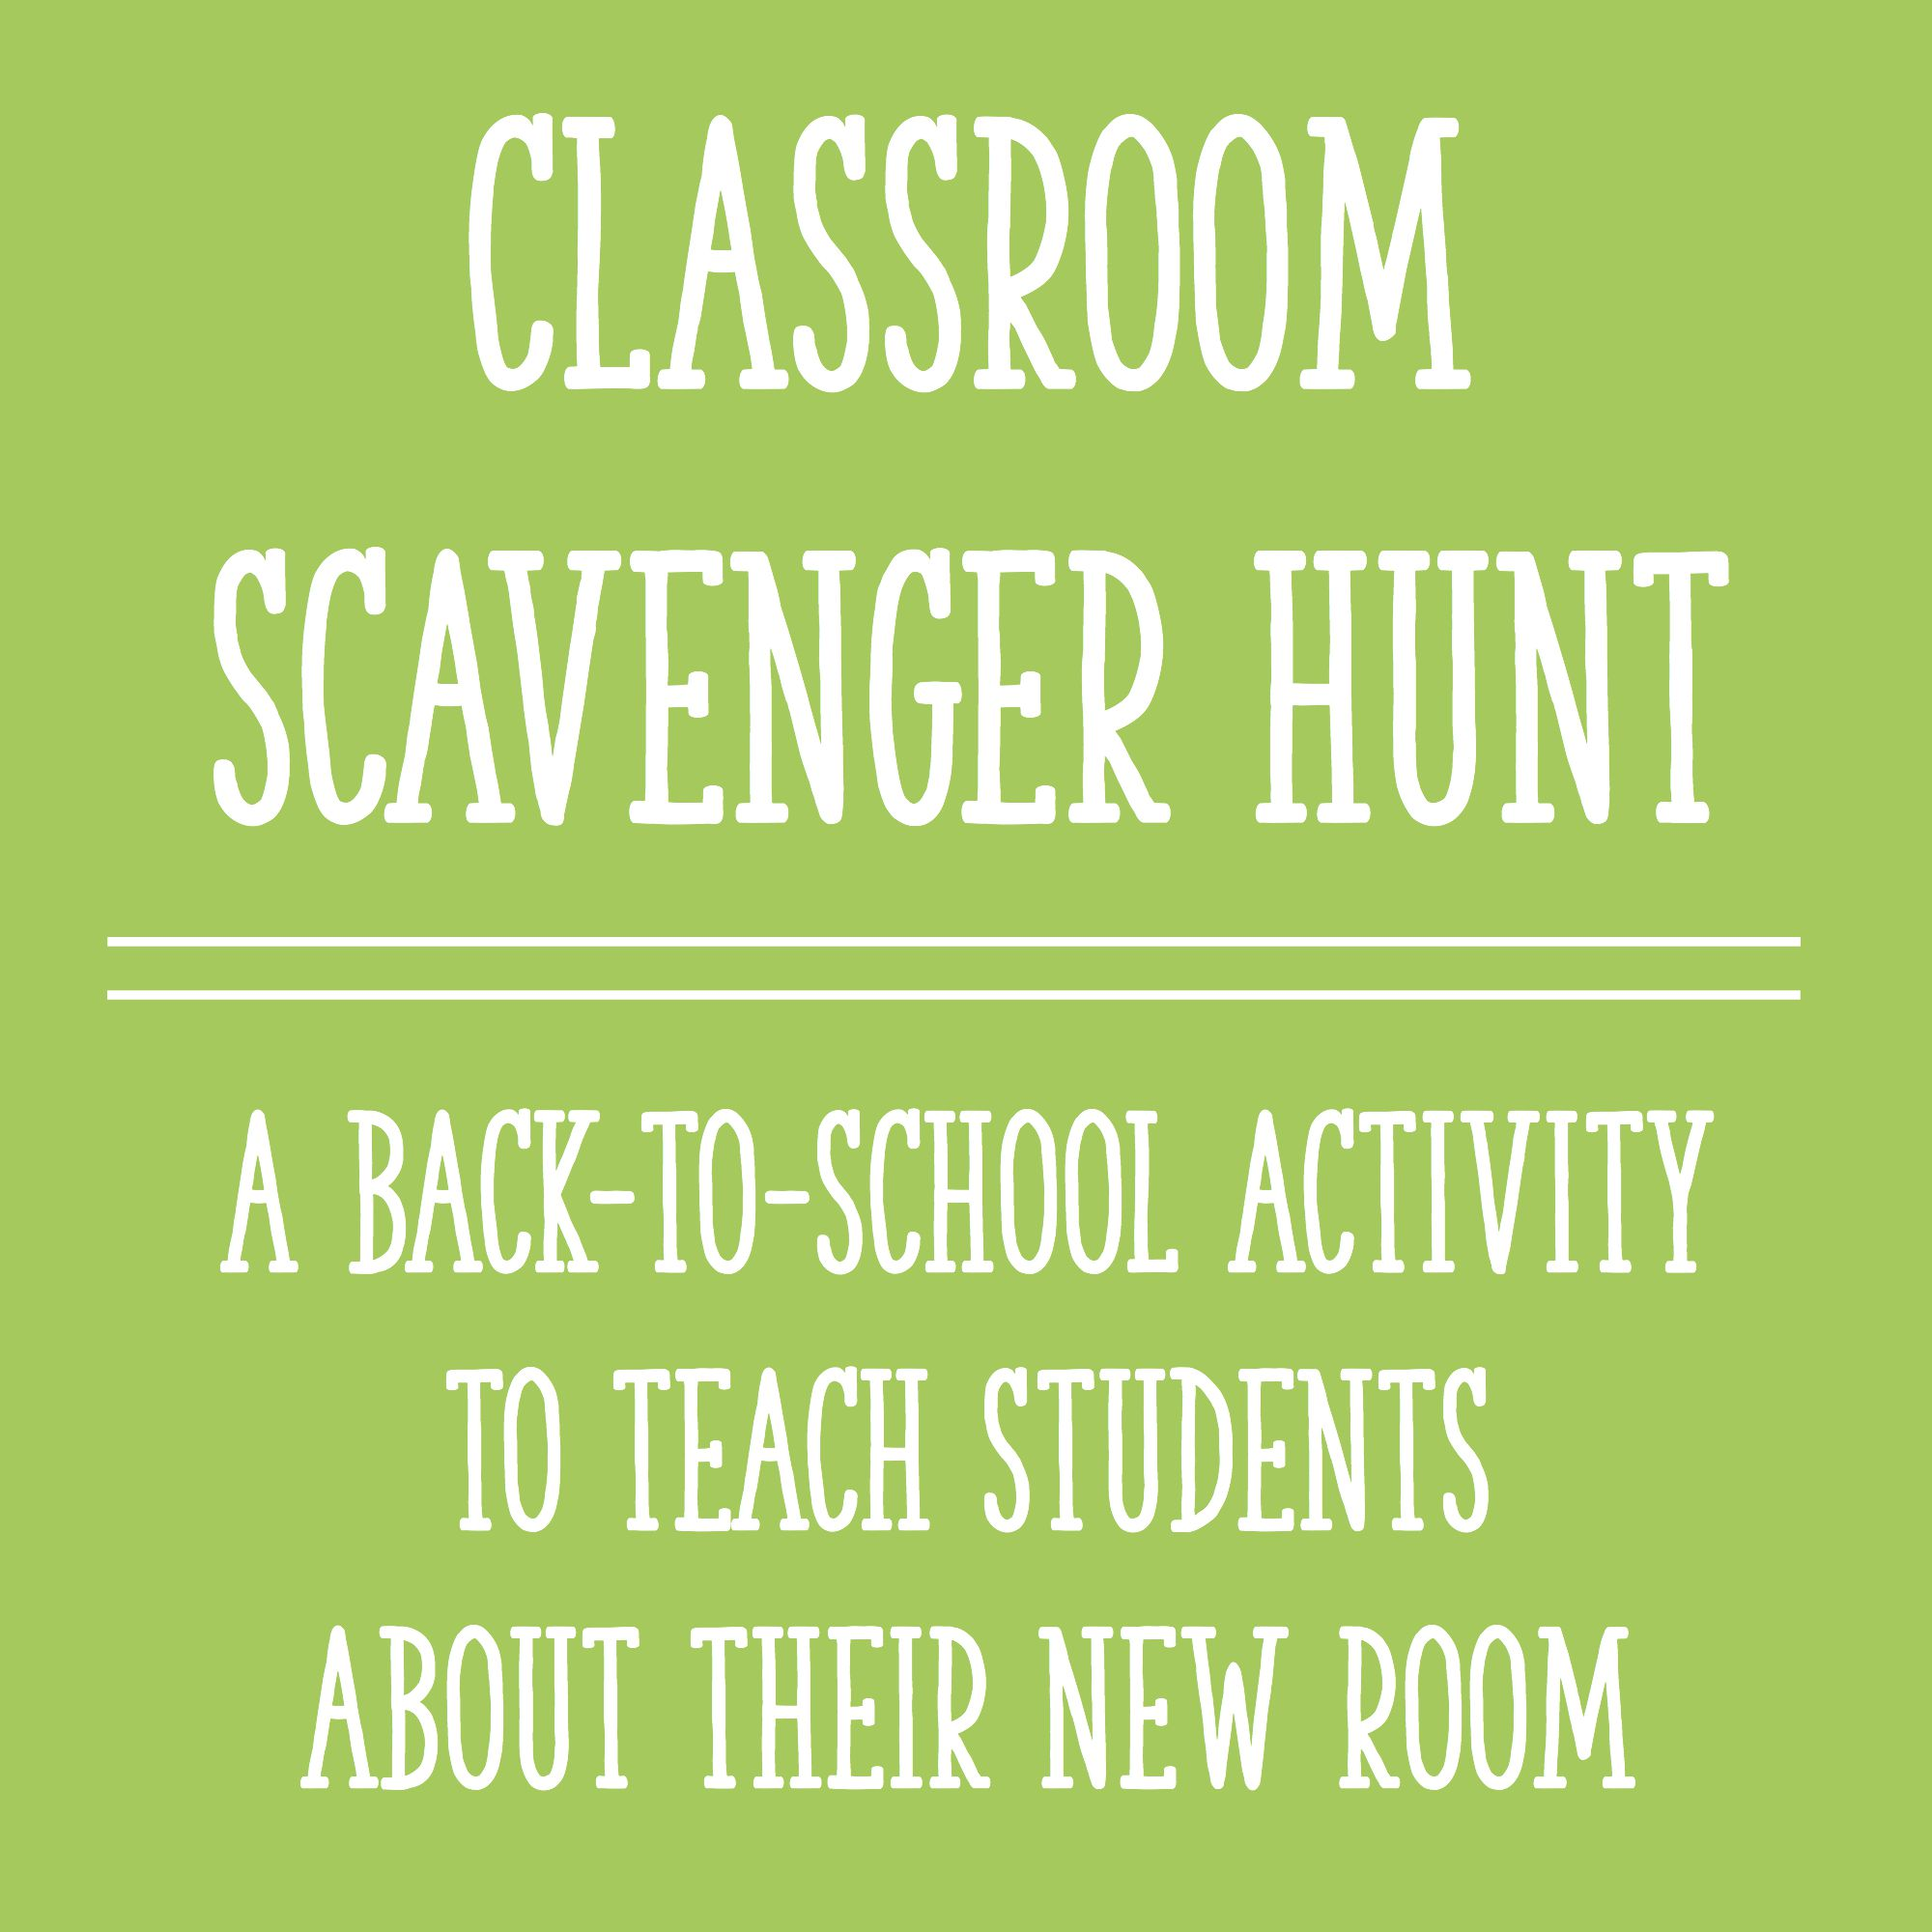 Classroom Scavenger Hunt: A Back To School Activity to Teach